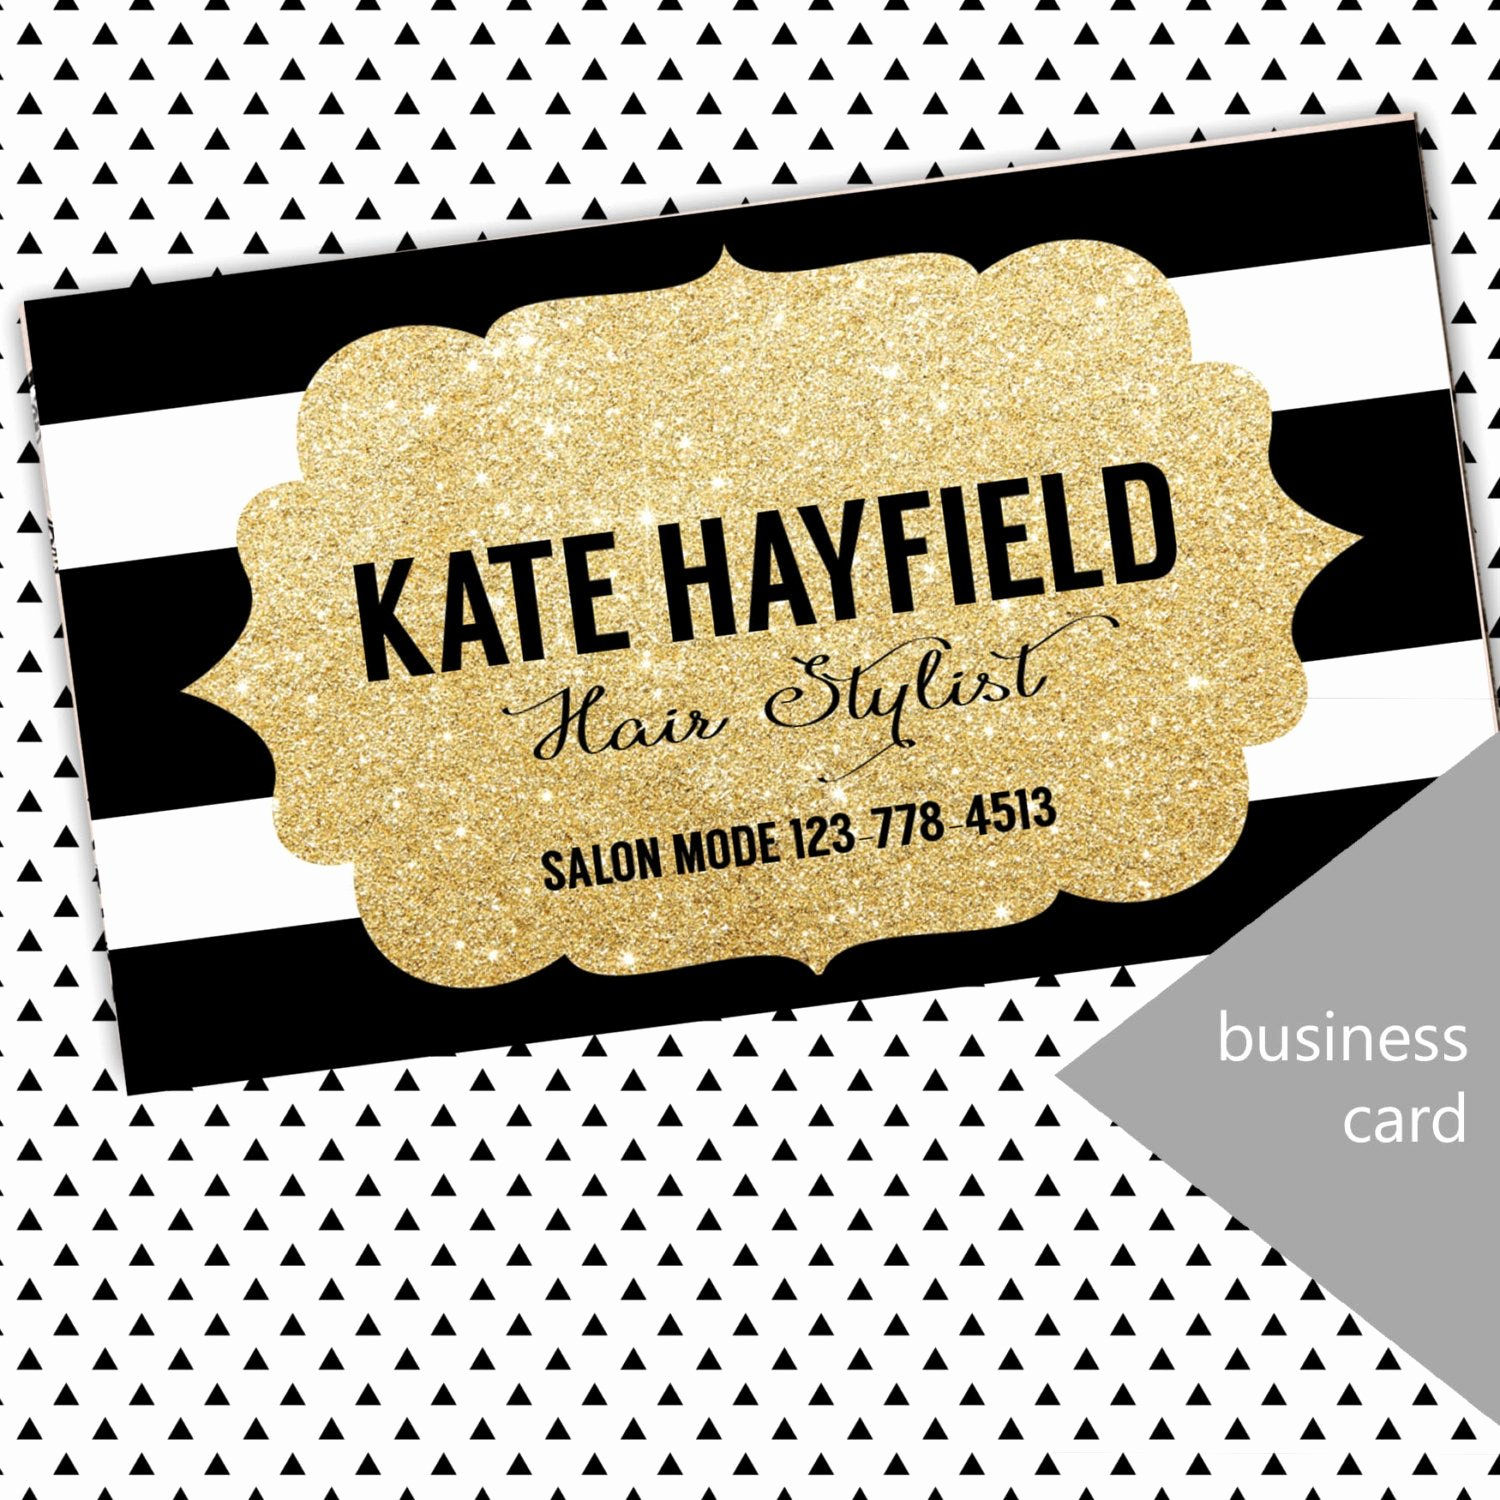 Hair Salon Buisness Cards Awesome Hair Stylist Business Cards Boutique Business by Trendydownloads